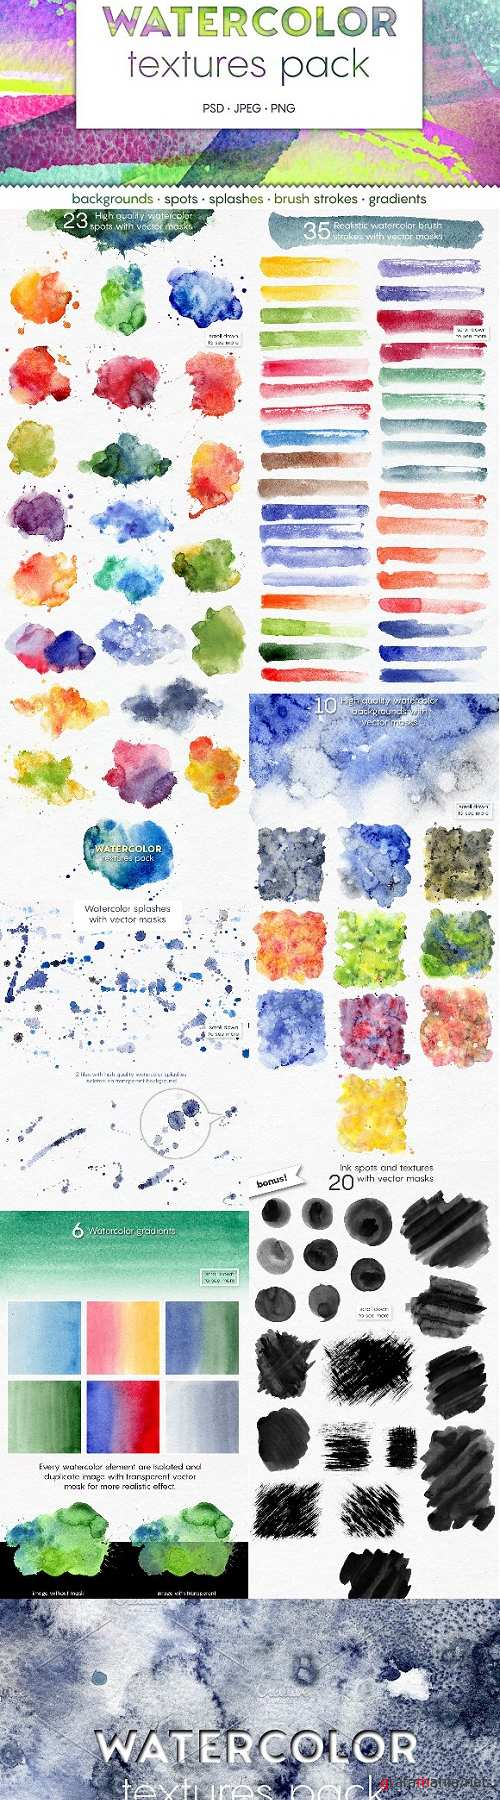 New WATERCOLOR Textures Pack - 1867093